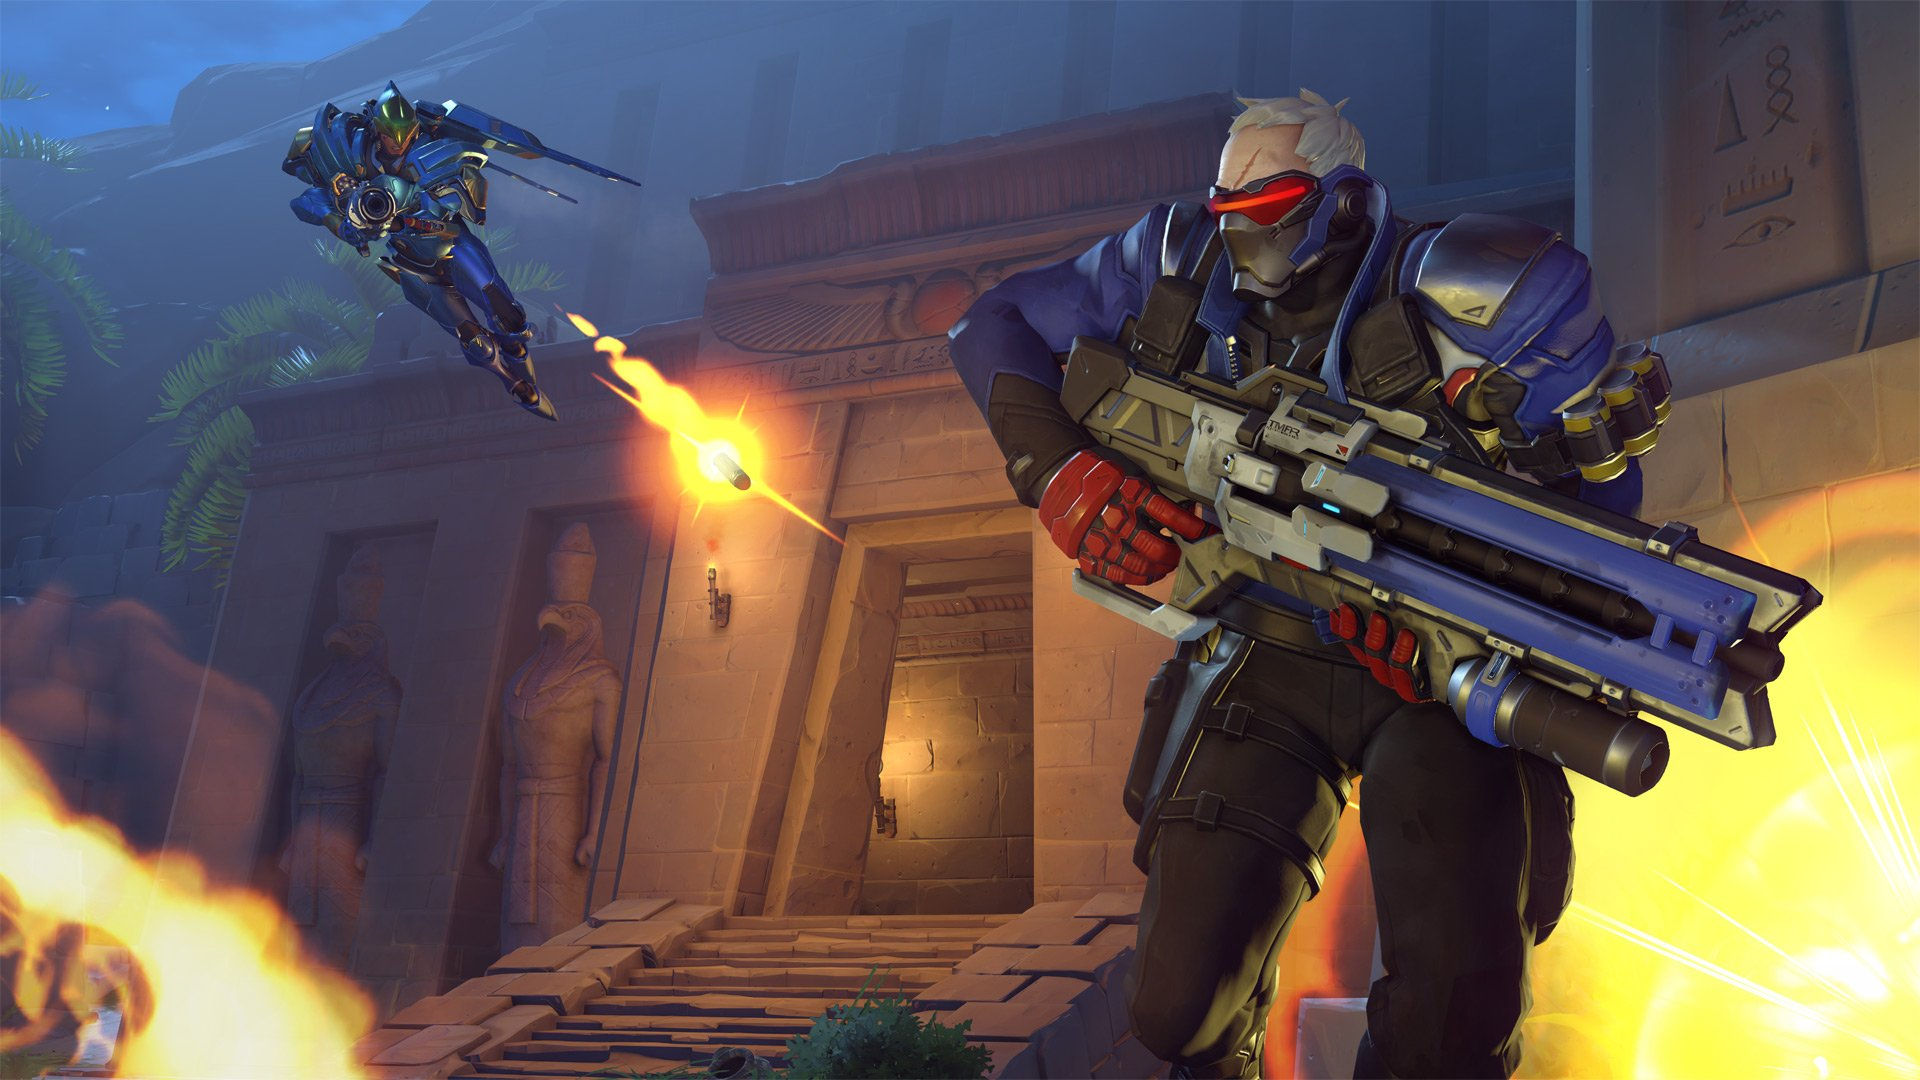 Overwatch Is Getting 4K Enhancements on Xbox One X